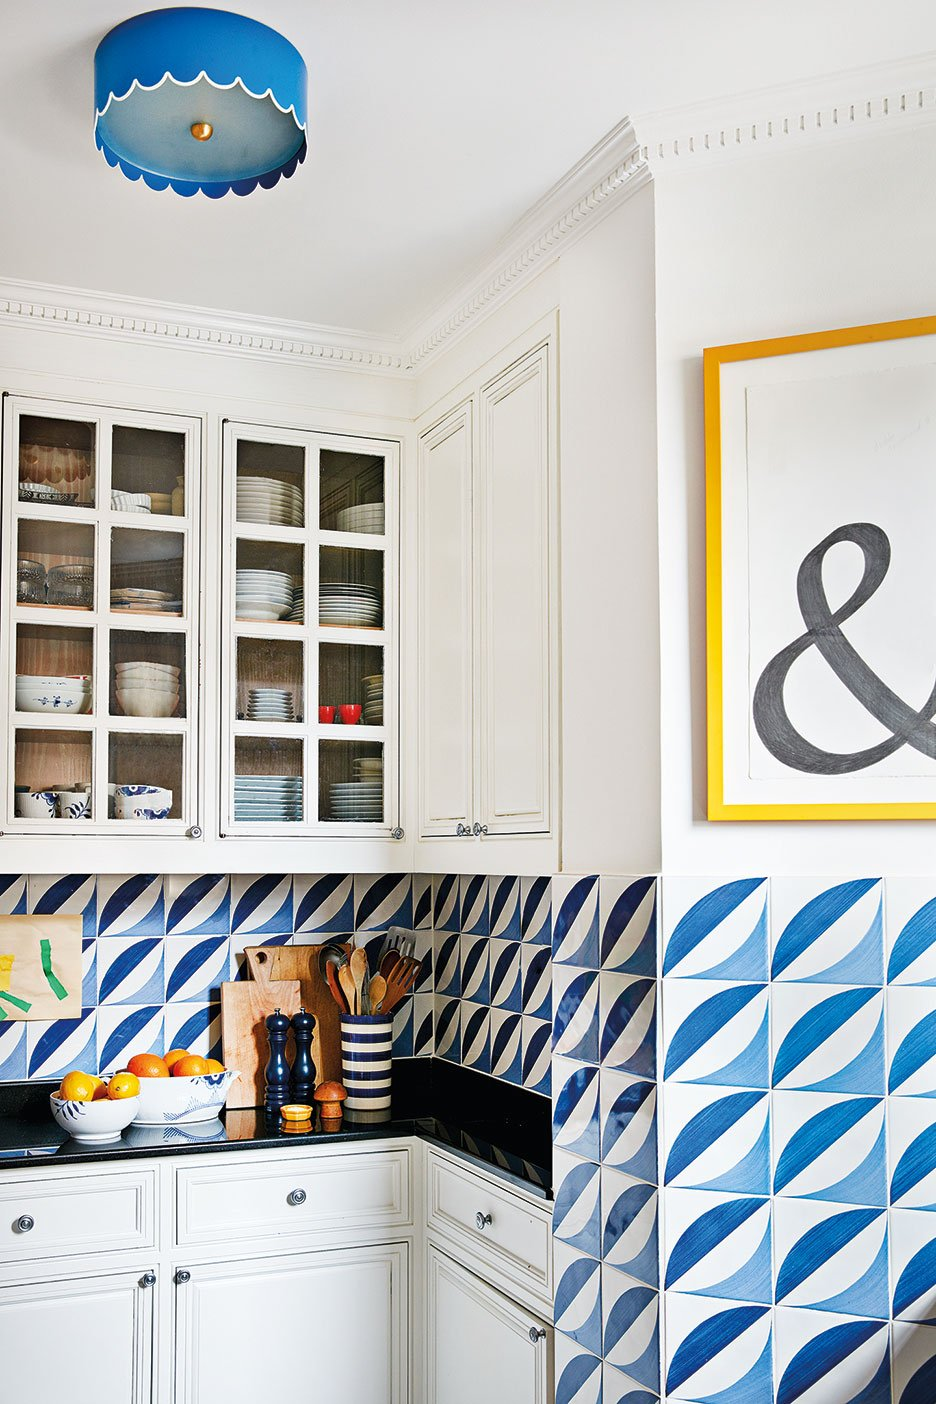 Get a Fresh Start: It's Time to Organize the Kitchen Cabinets